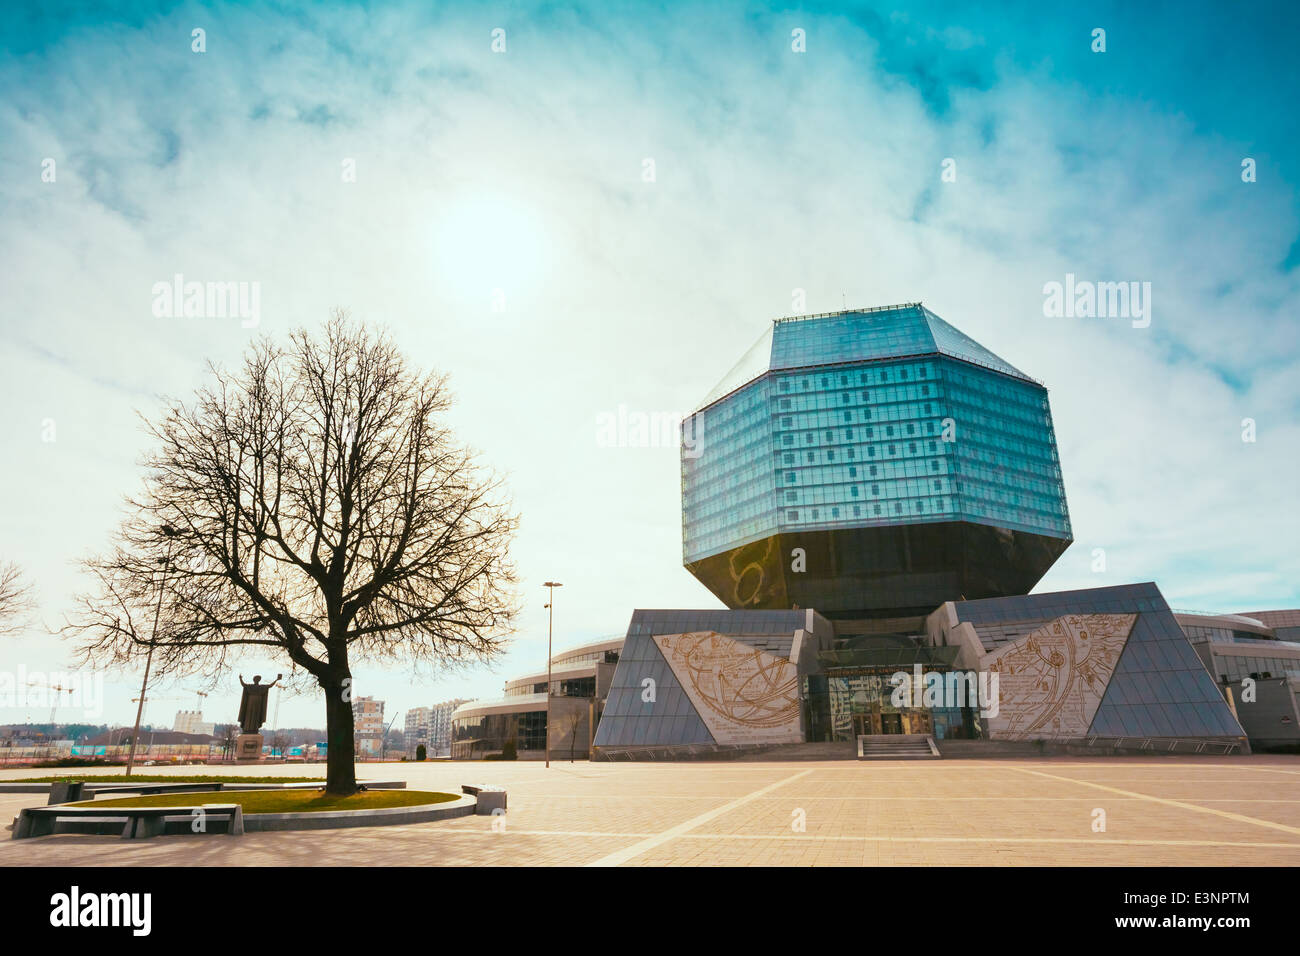 Unique building of National Library of Belarus in Minsk, Belarus. The building has 22 floors and is 72-metre high. - Stock Image